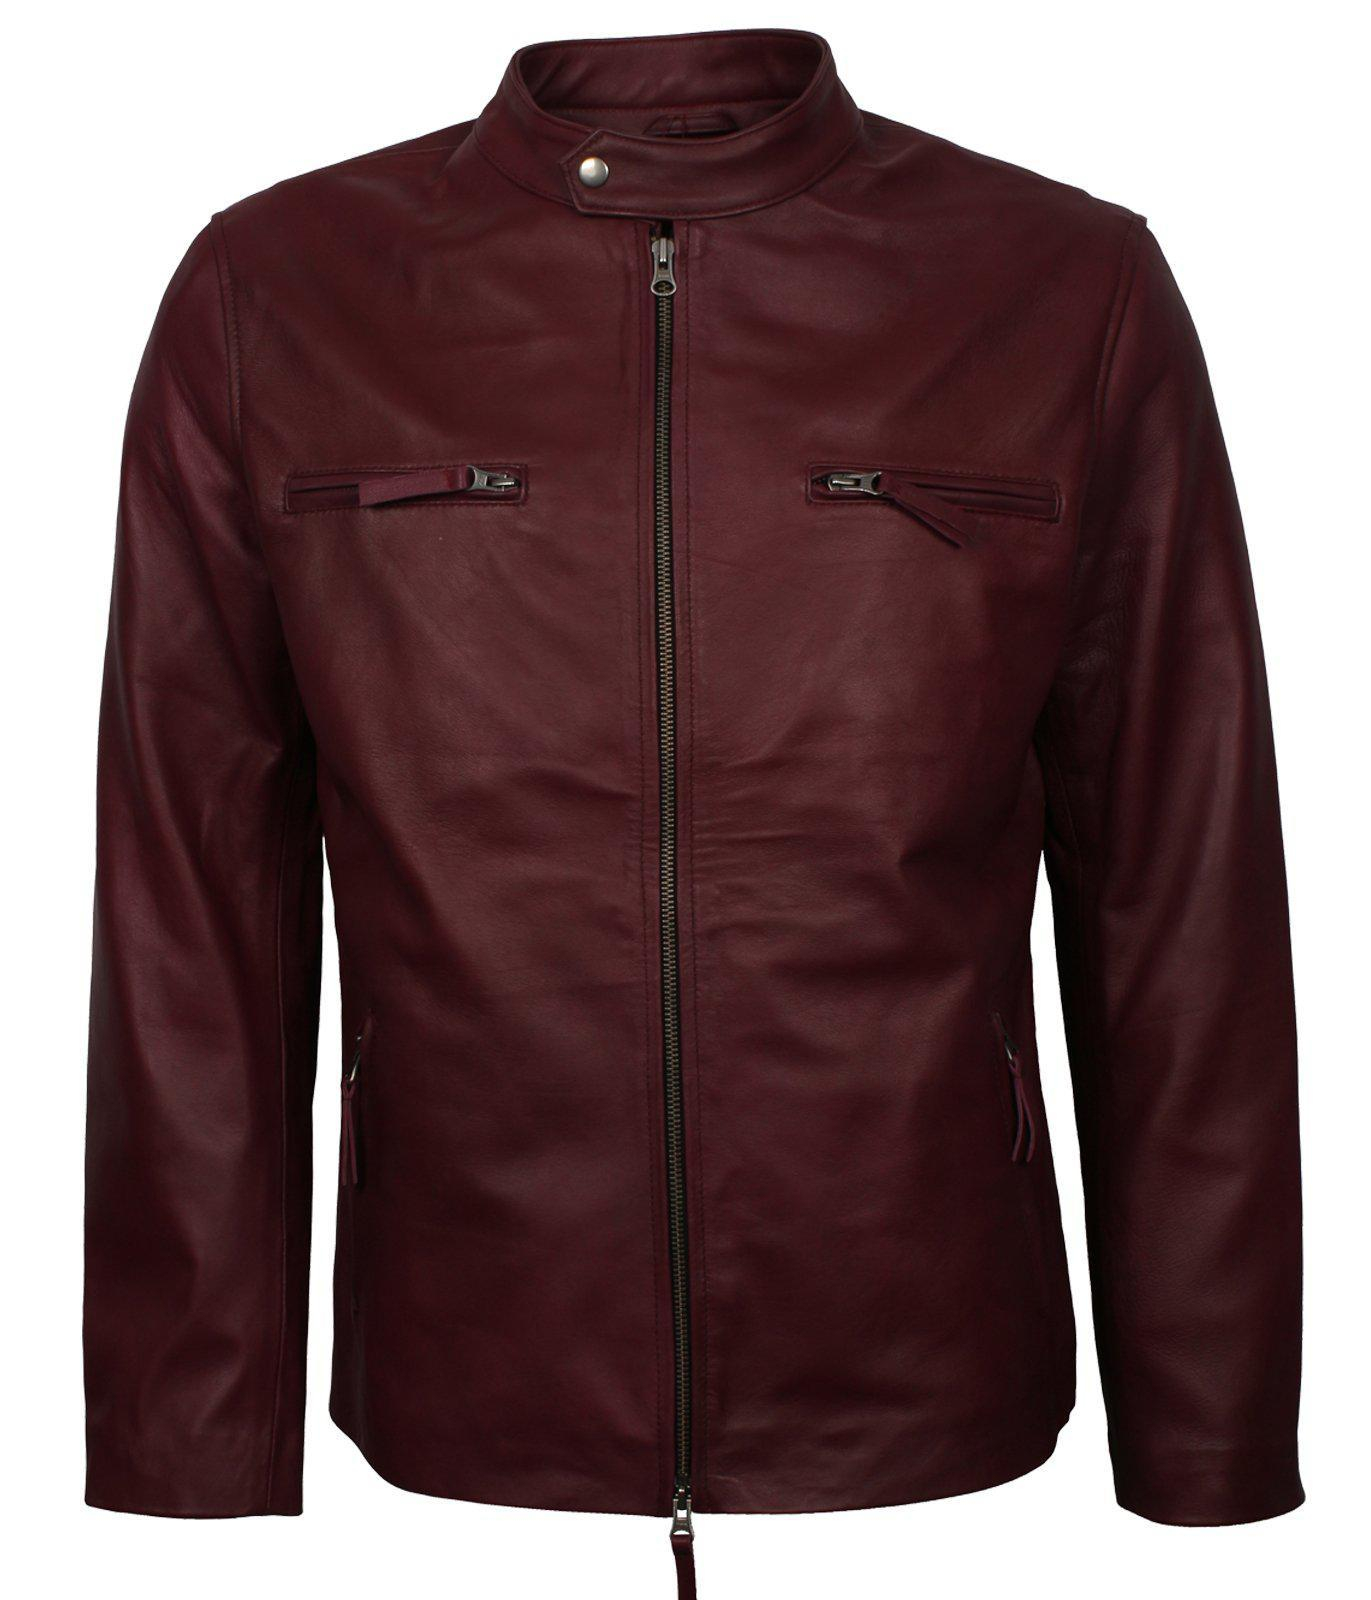 Classic Maroon Genuine Leather Jacket